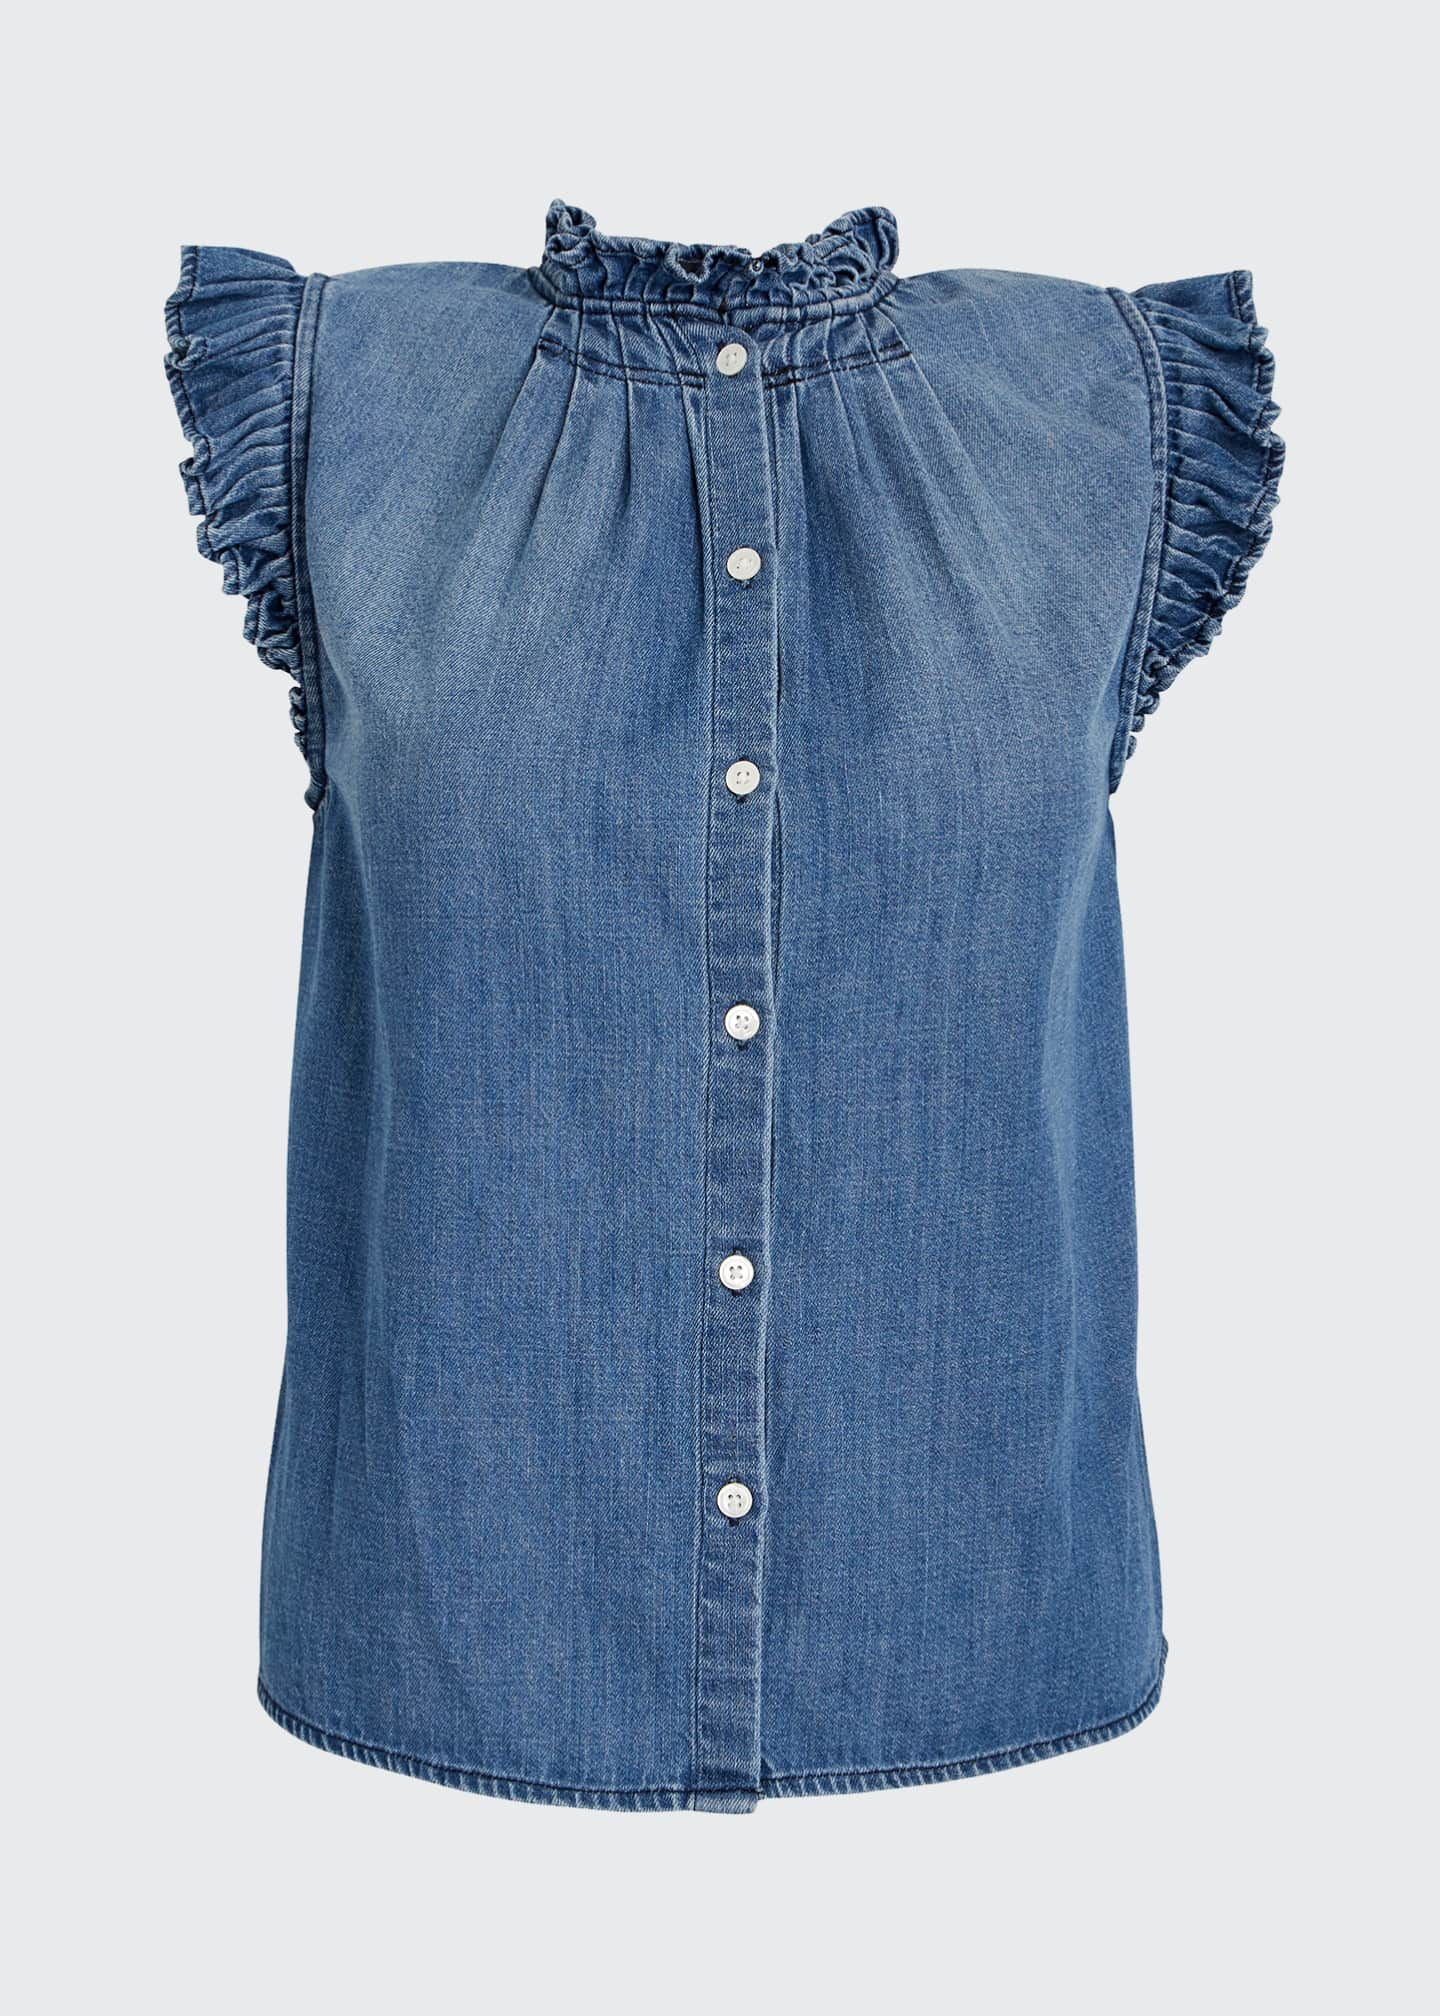 Image 5 of 5: Ruffle Denim Sleeveless Top